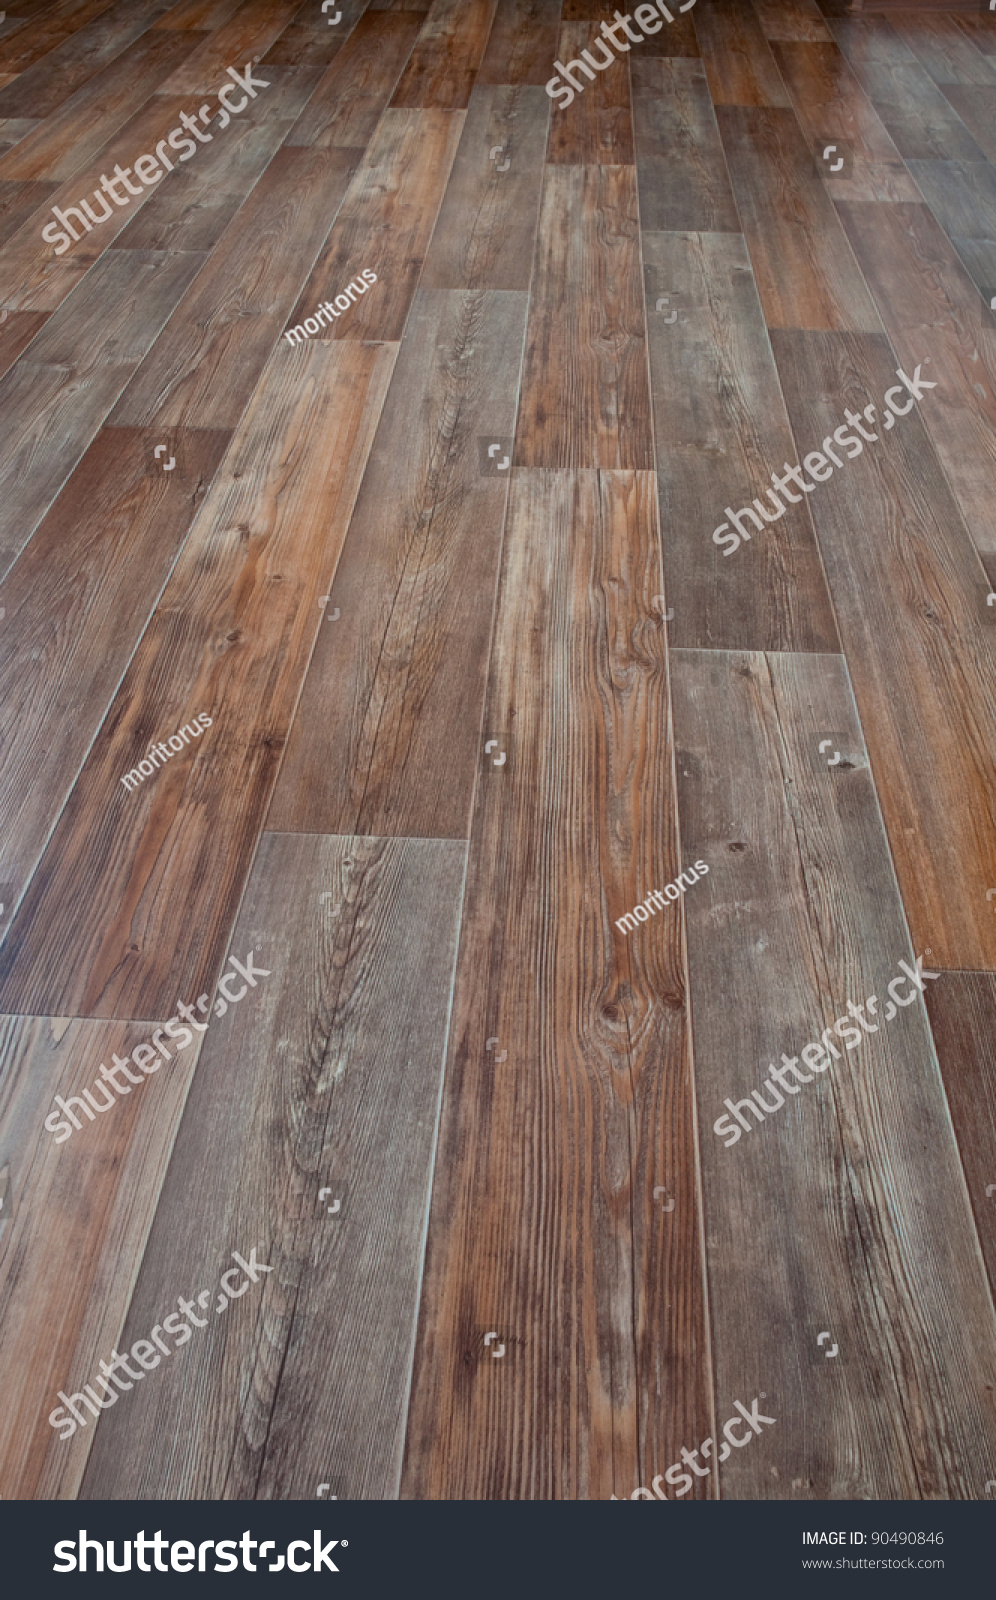 Linoleum floor covering imitation wood stock photo for Hardwood floor covering